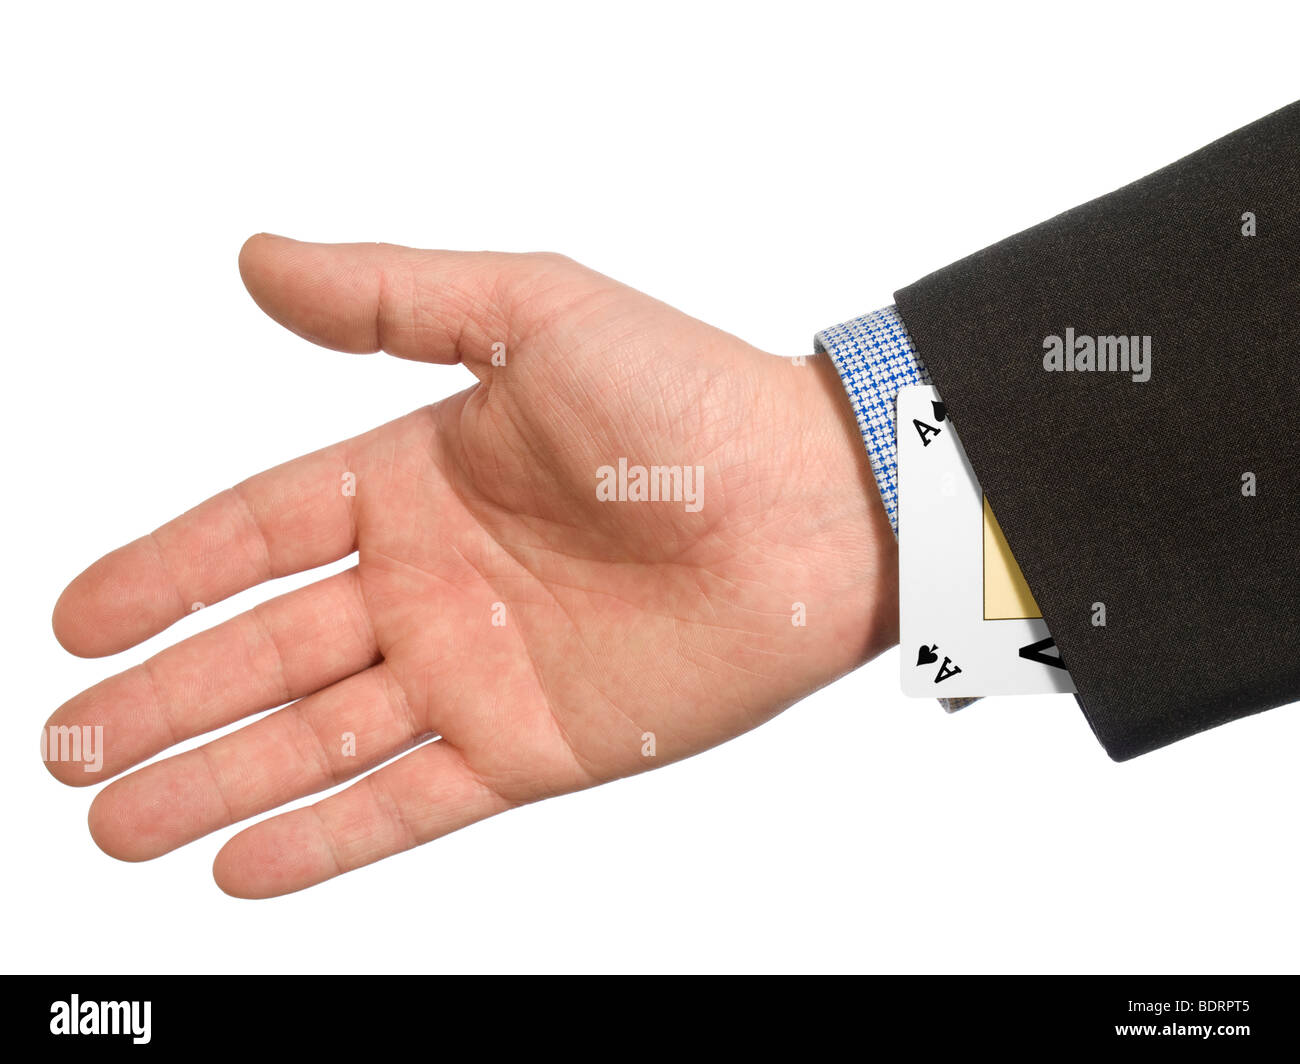 A man's hand hiding an ace up his sleeve. - Stock Image